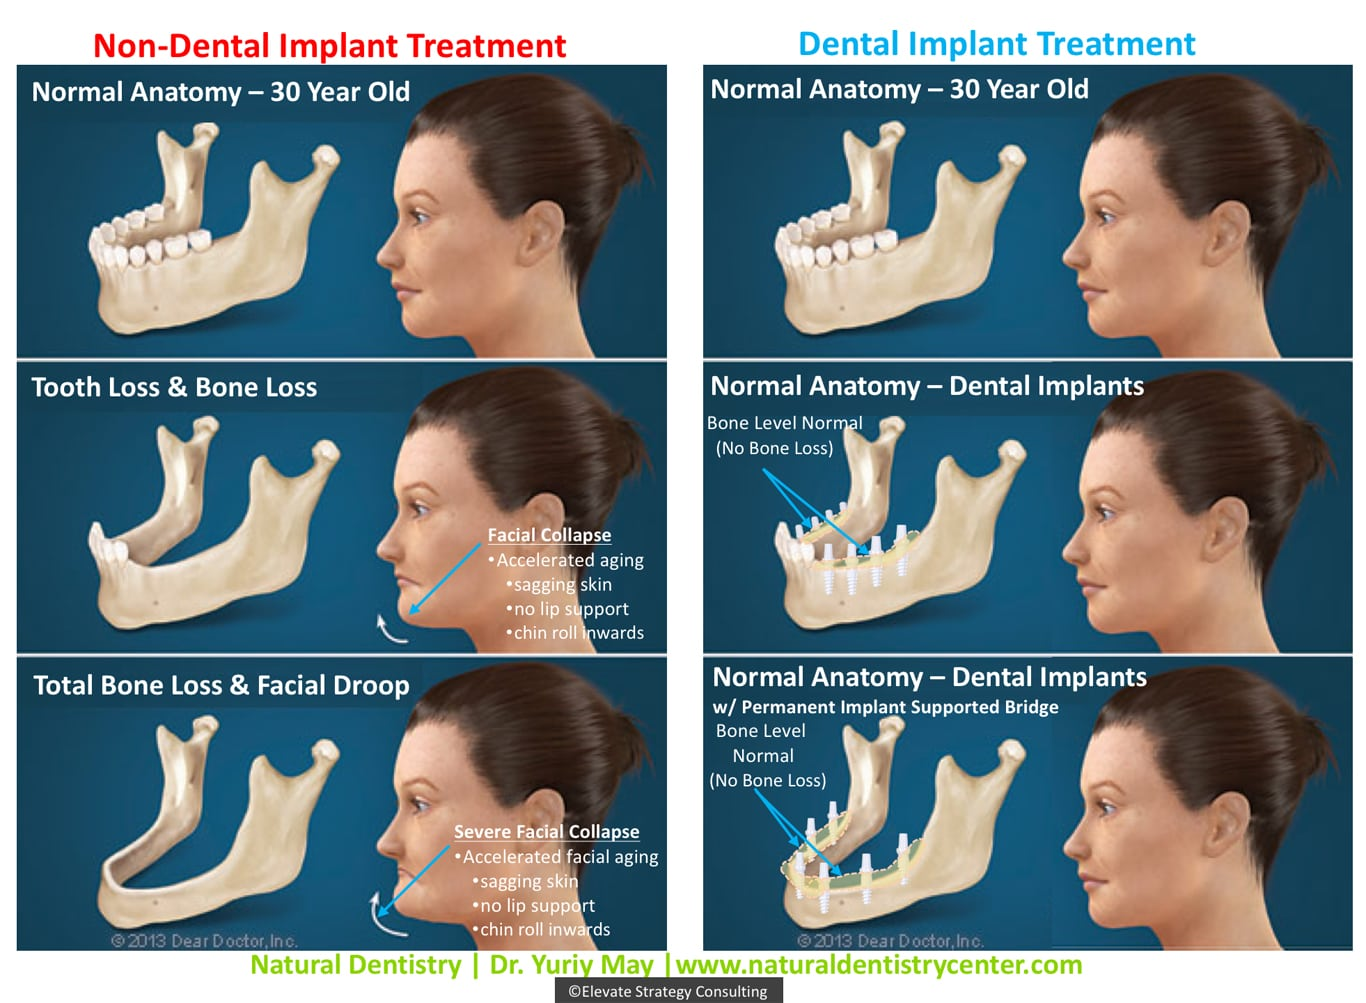 Dental Face Lift Dr. Yuriy May Connecticut | Best Dental Implant Surgeon Connecticut | Dental Implant Dentist Connecticut | Full Smile Reconstruction